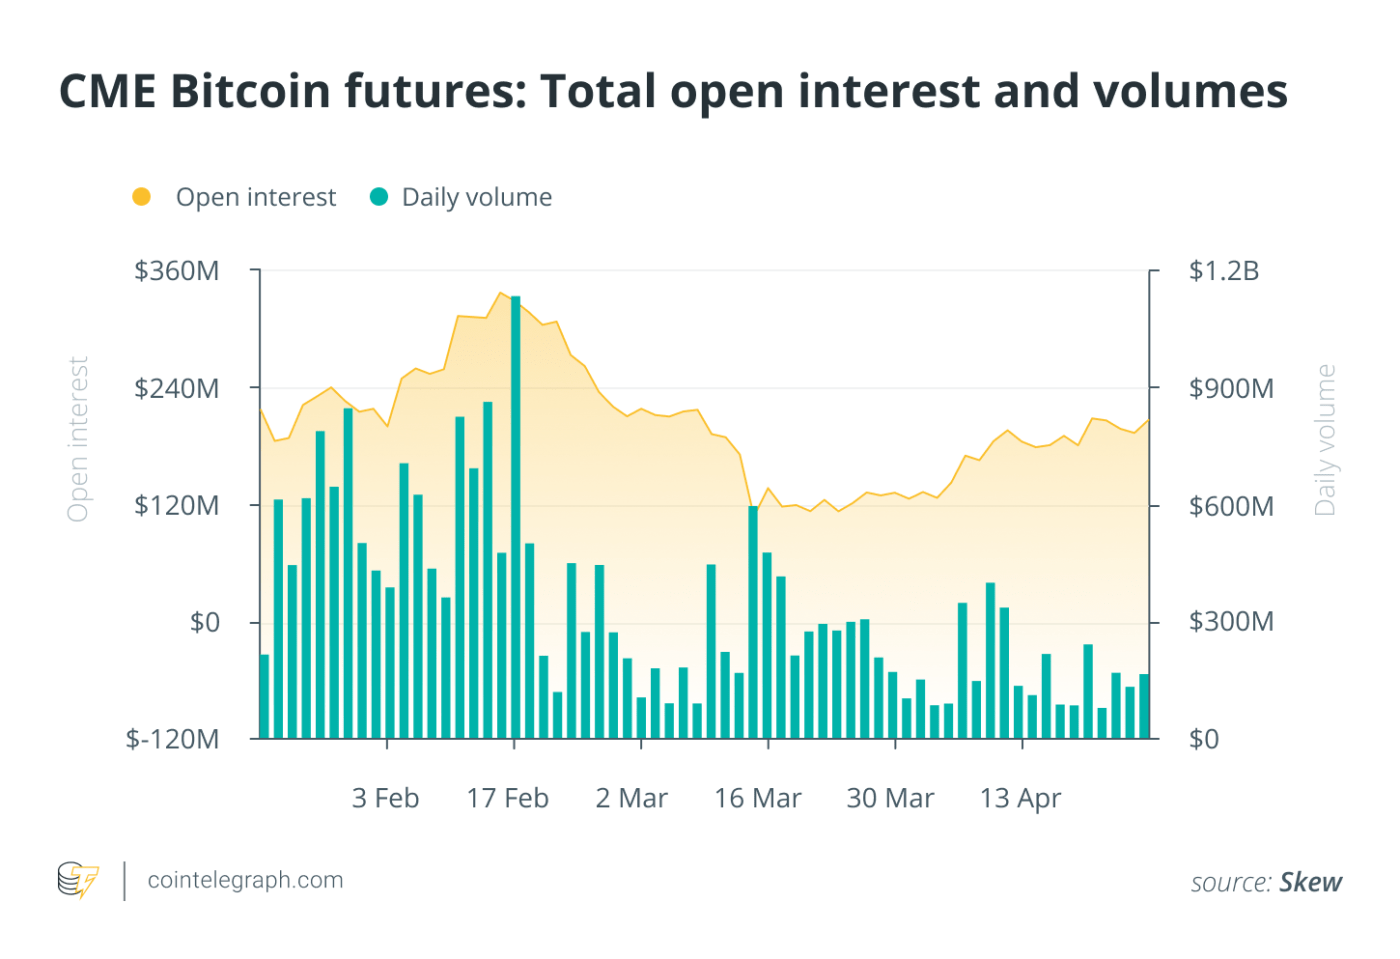 CME Bitcoin futures Total open interest and volumes